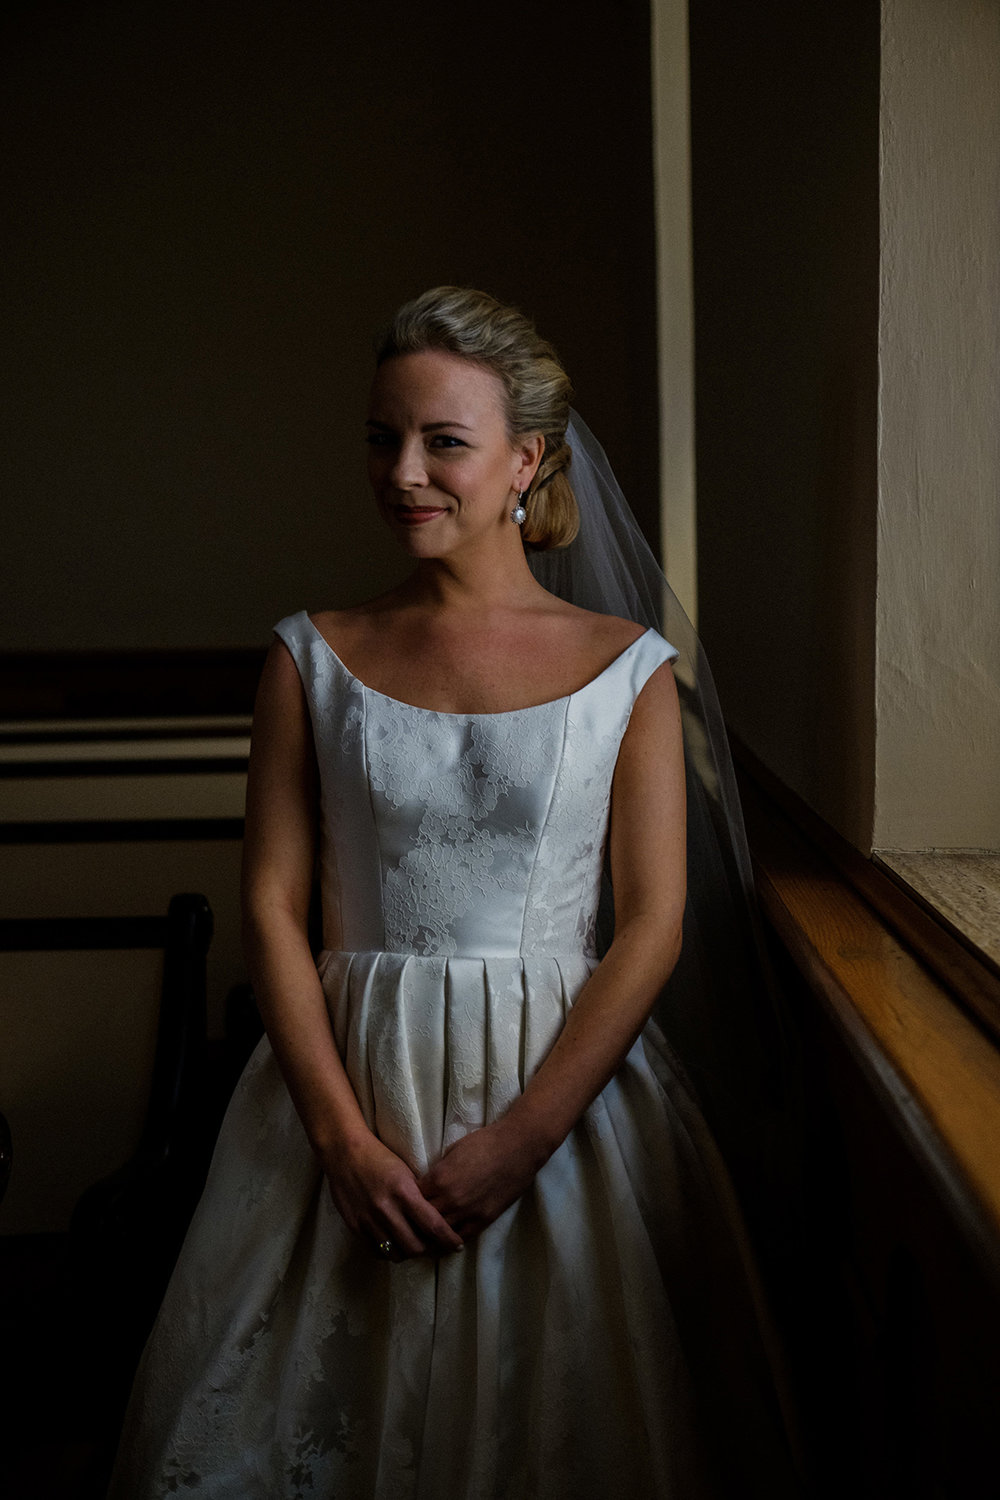 Oxford_Mississippi_Wedding_Photographer_30.jpg